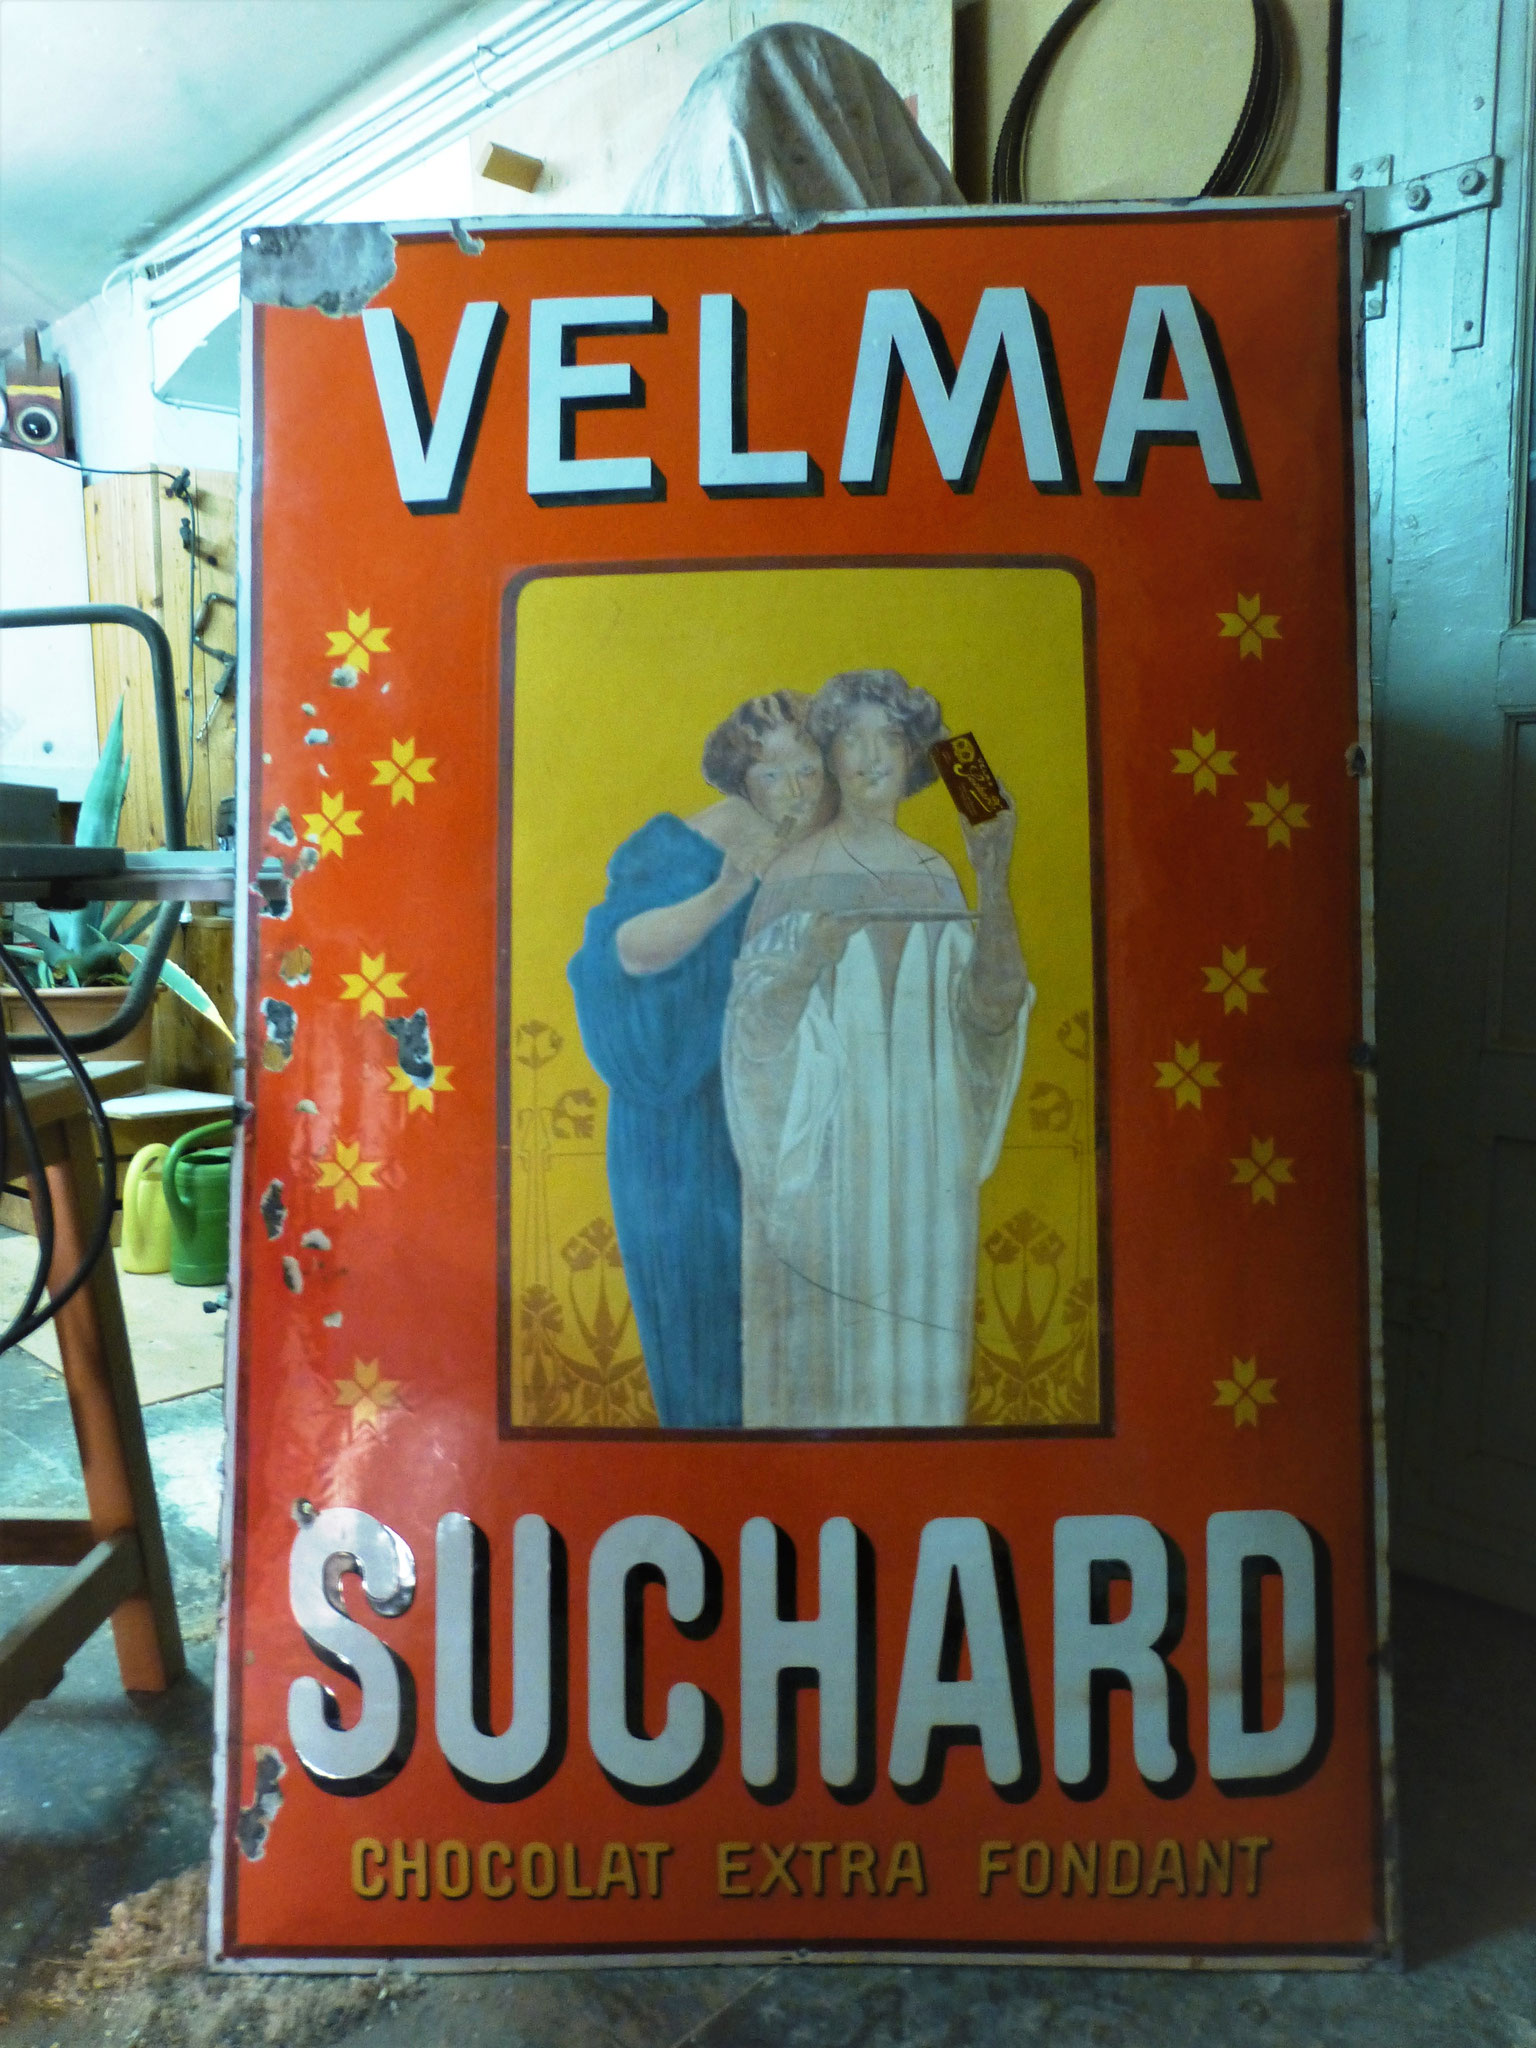 Grosses Suchard Velma im unrestaurierten Fundzustand